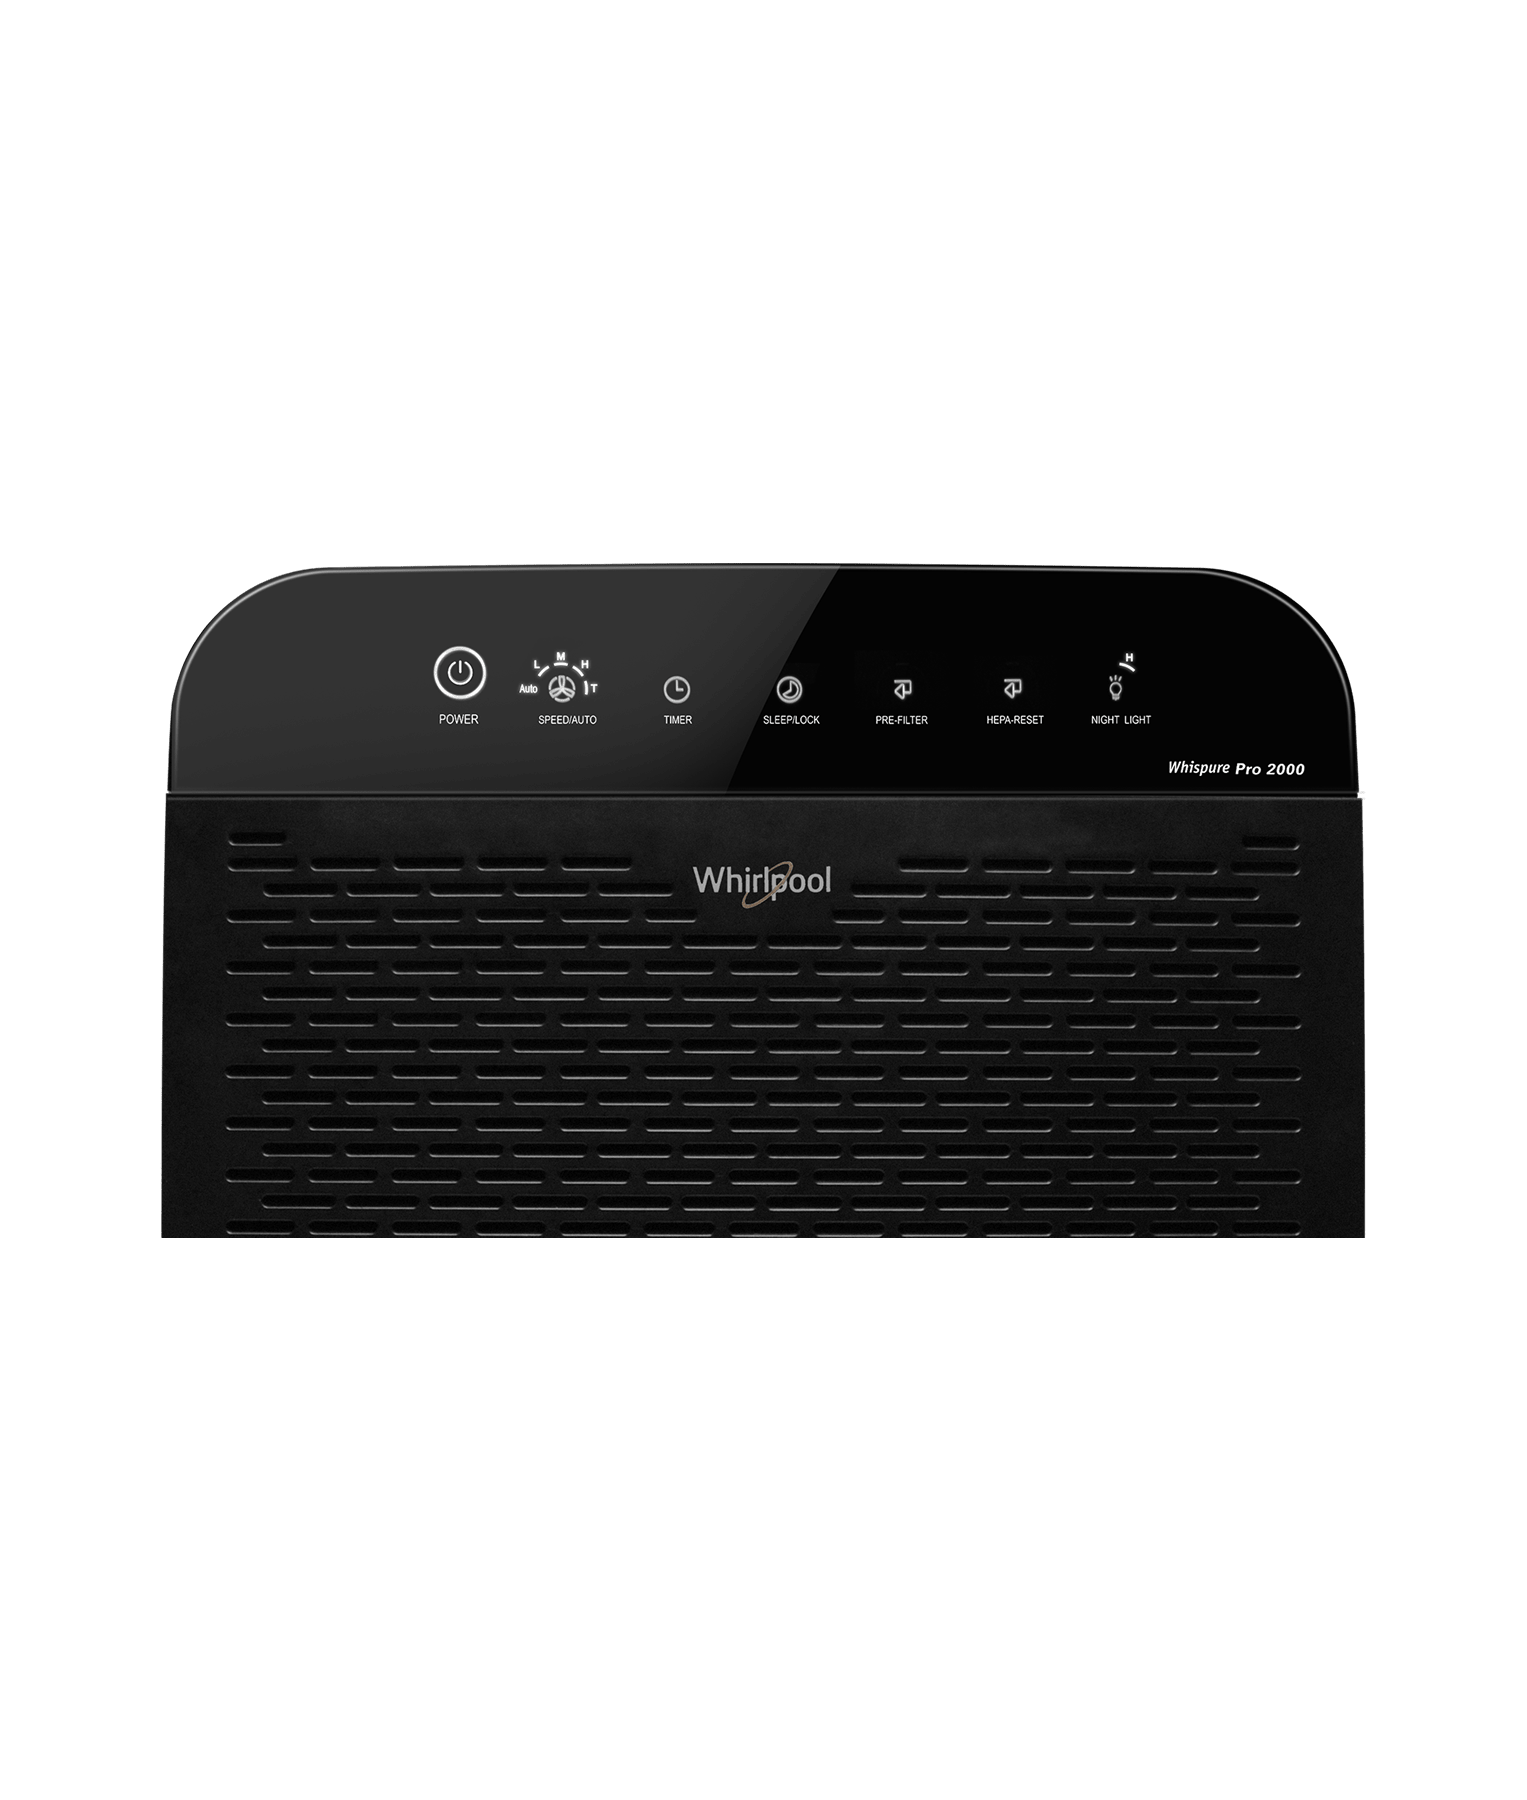 Whirlpool Wppro2000 Whispure Air Purifier Slate Black